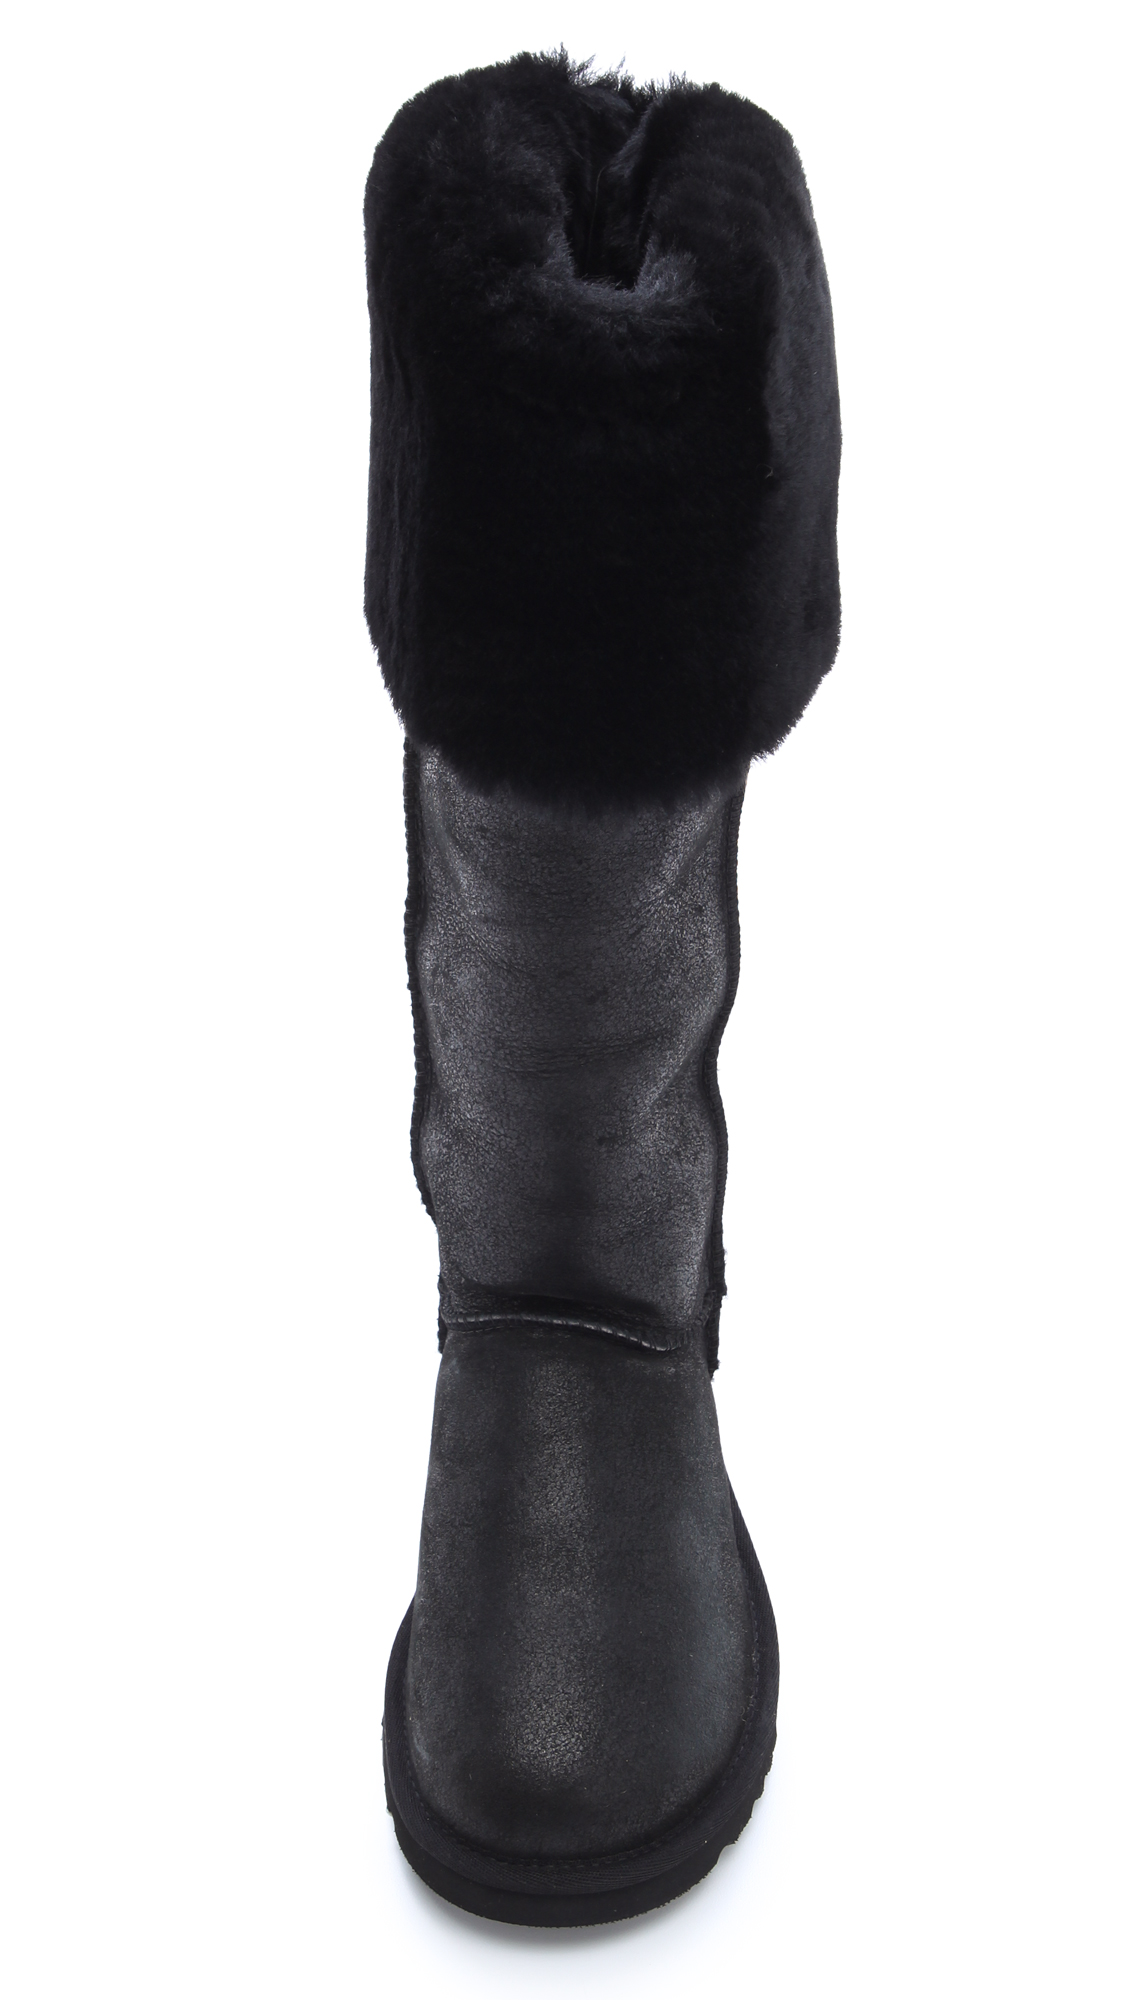 031729f4c46 Over The Knee Ugg Boots Ebay